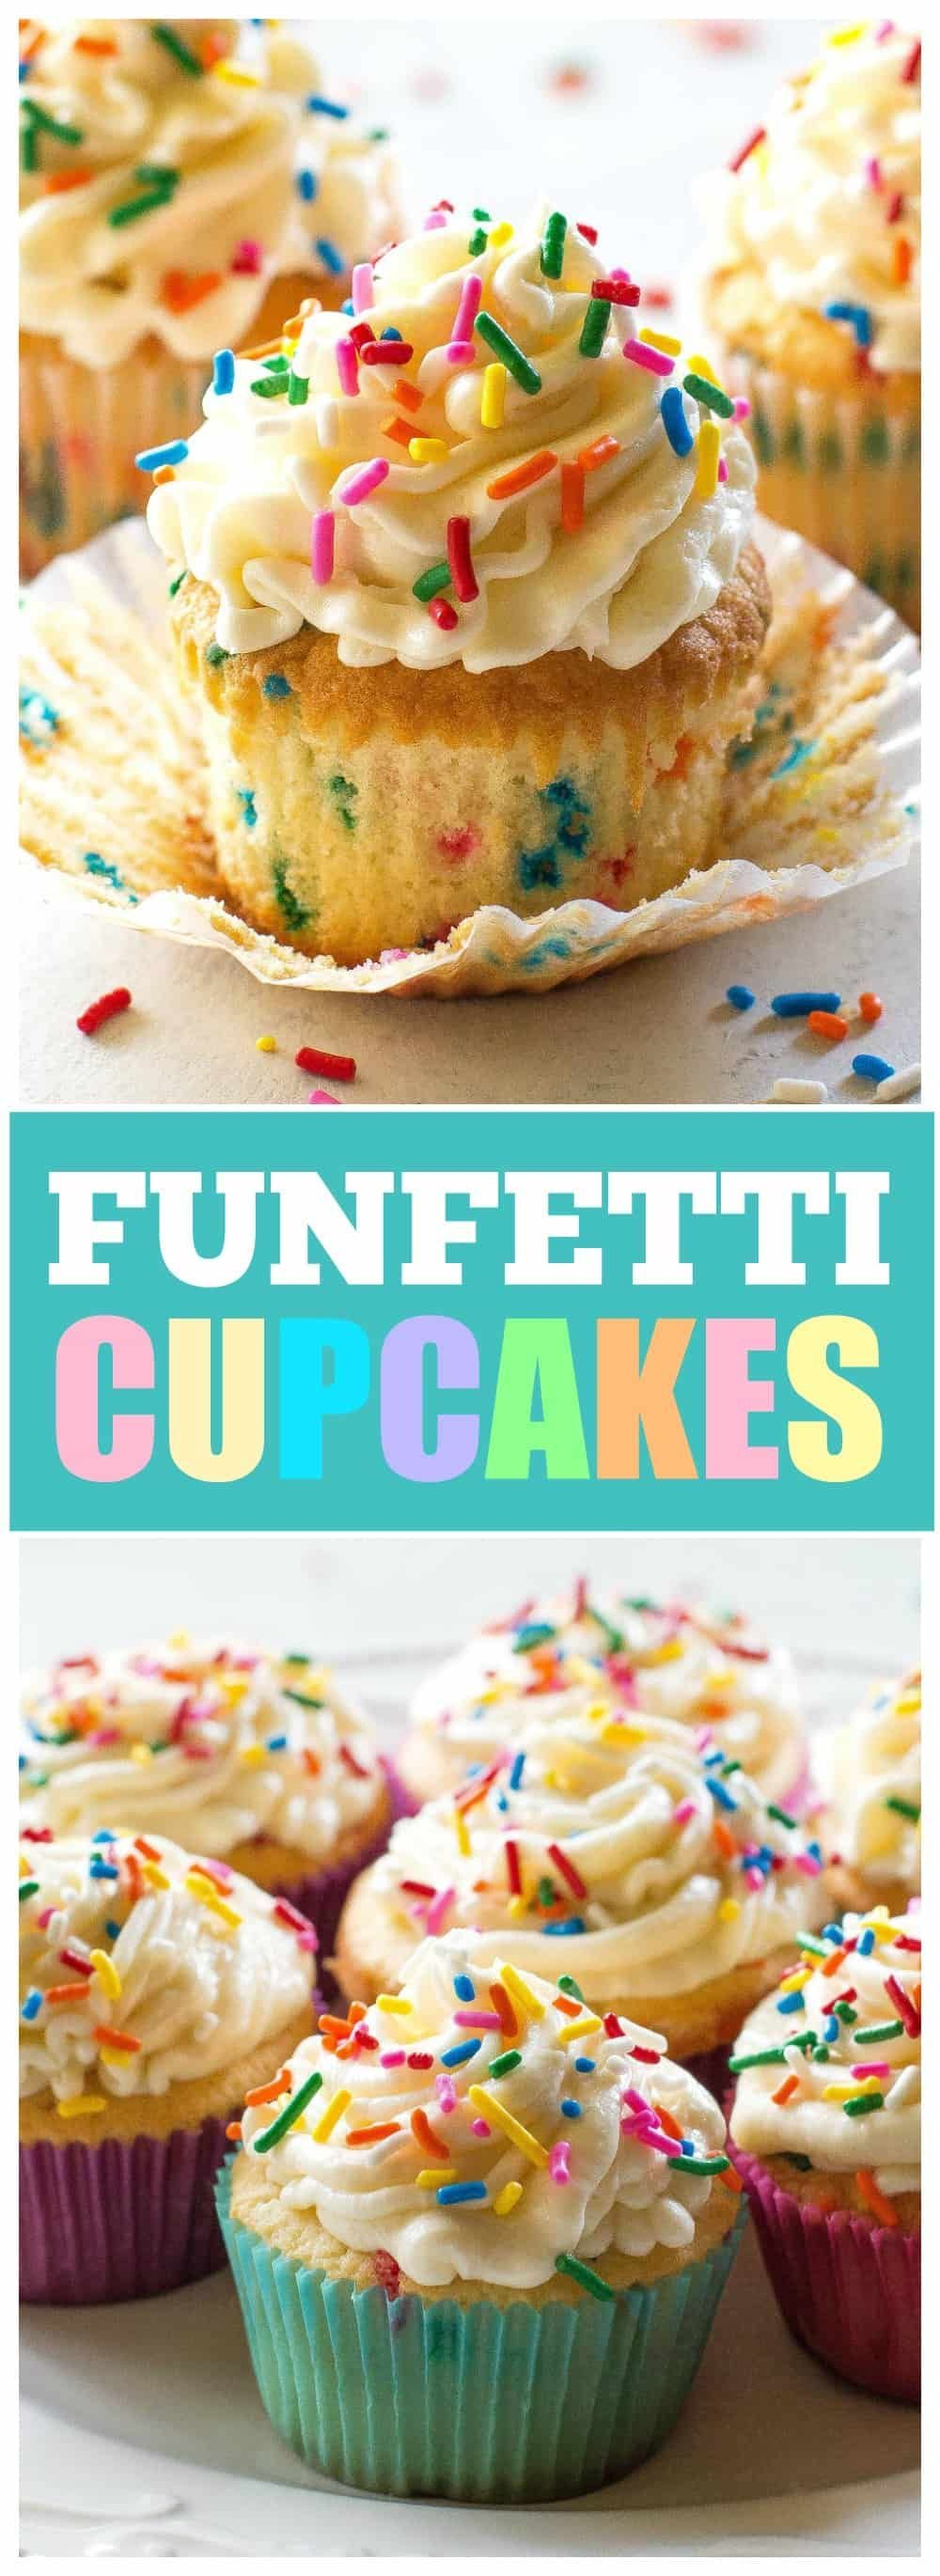 Funfetti Cupcakes - The Girl Who Ate Everything